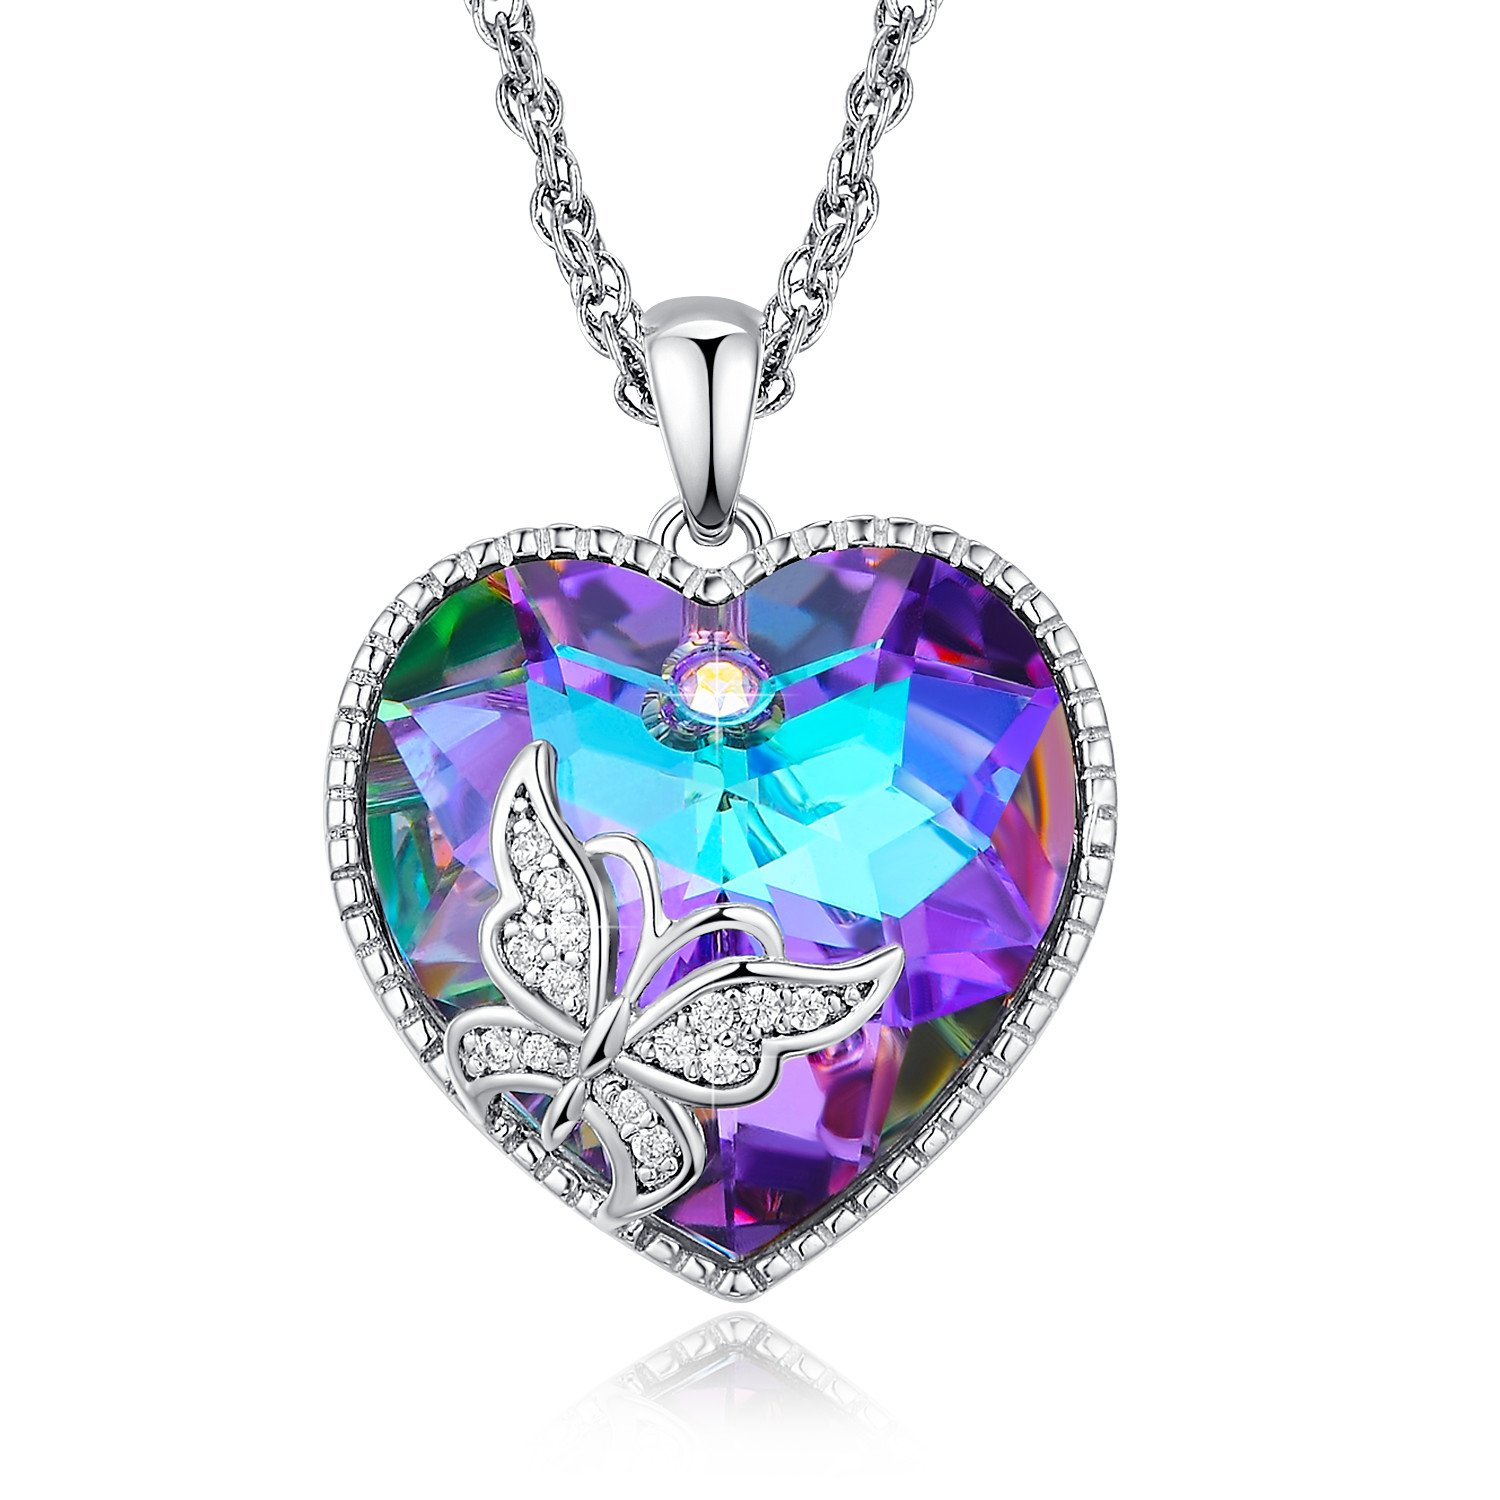 ANCREU Angel Wing Necklaces for Women Love Heart Pendant Necklace Gifts for Women Girls (A_Purple Butterfly)